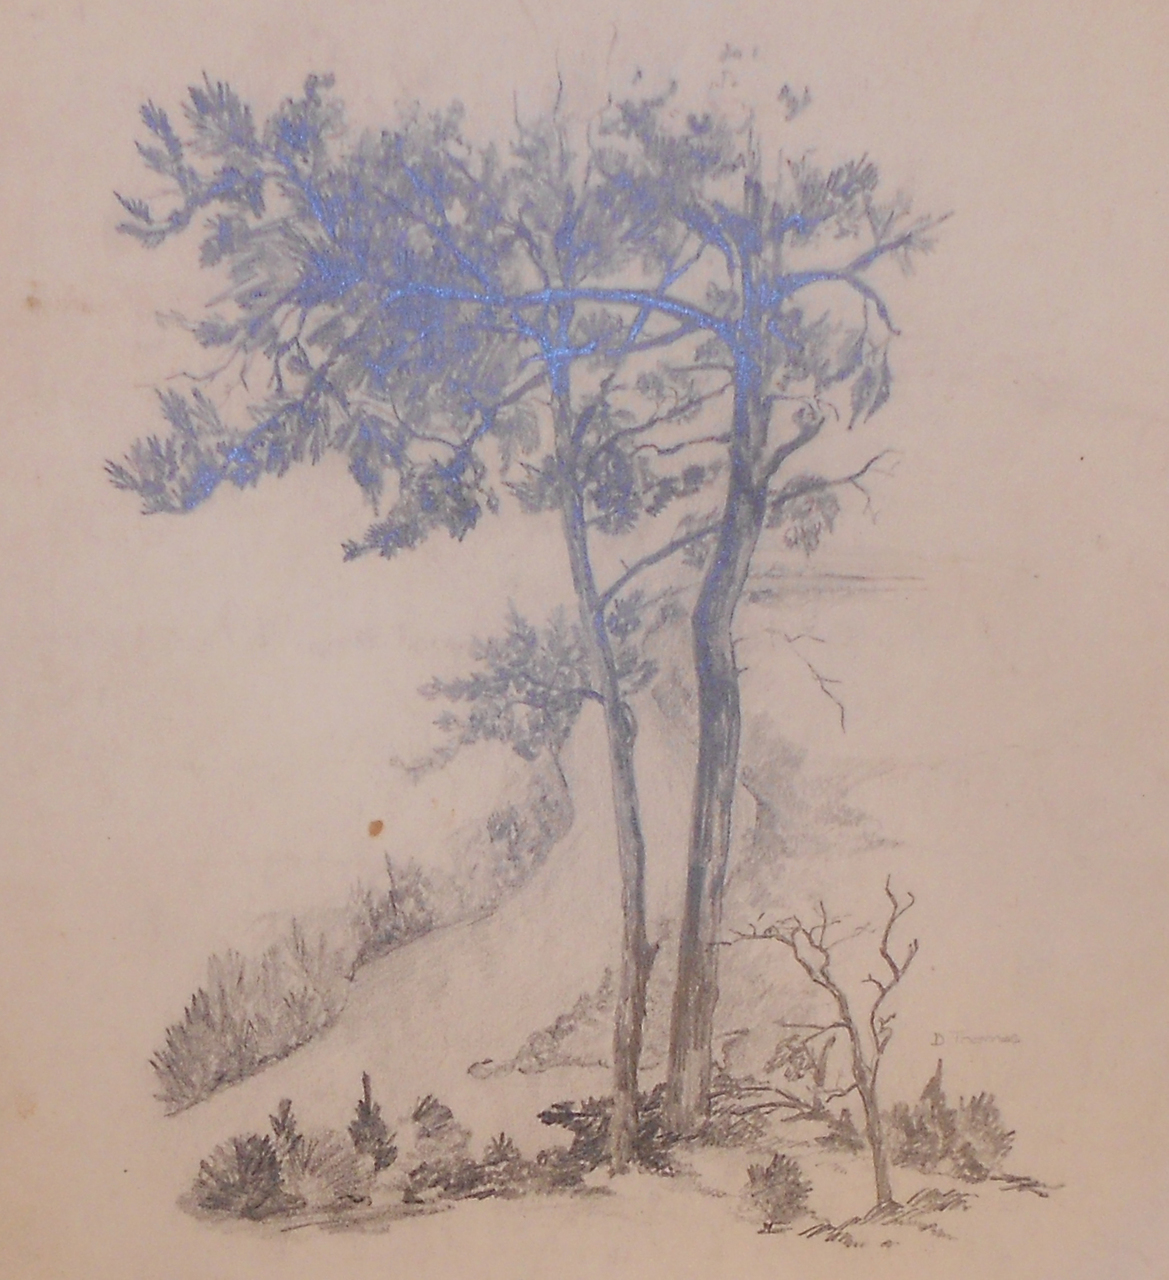 Details about vintage signed d thomas pencil drawing sketch of trees